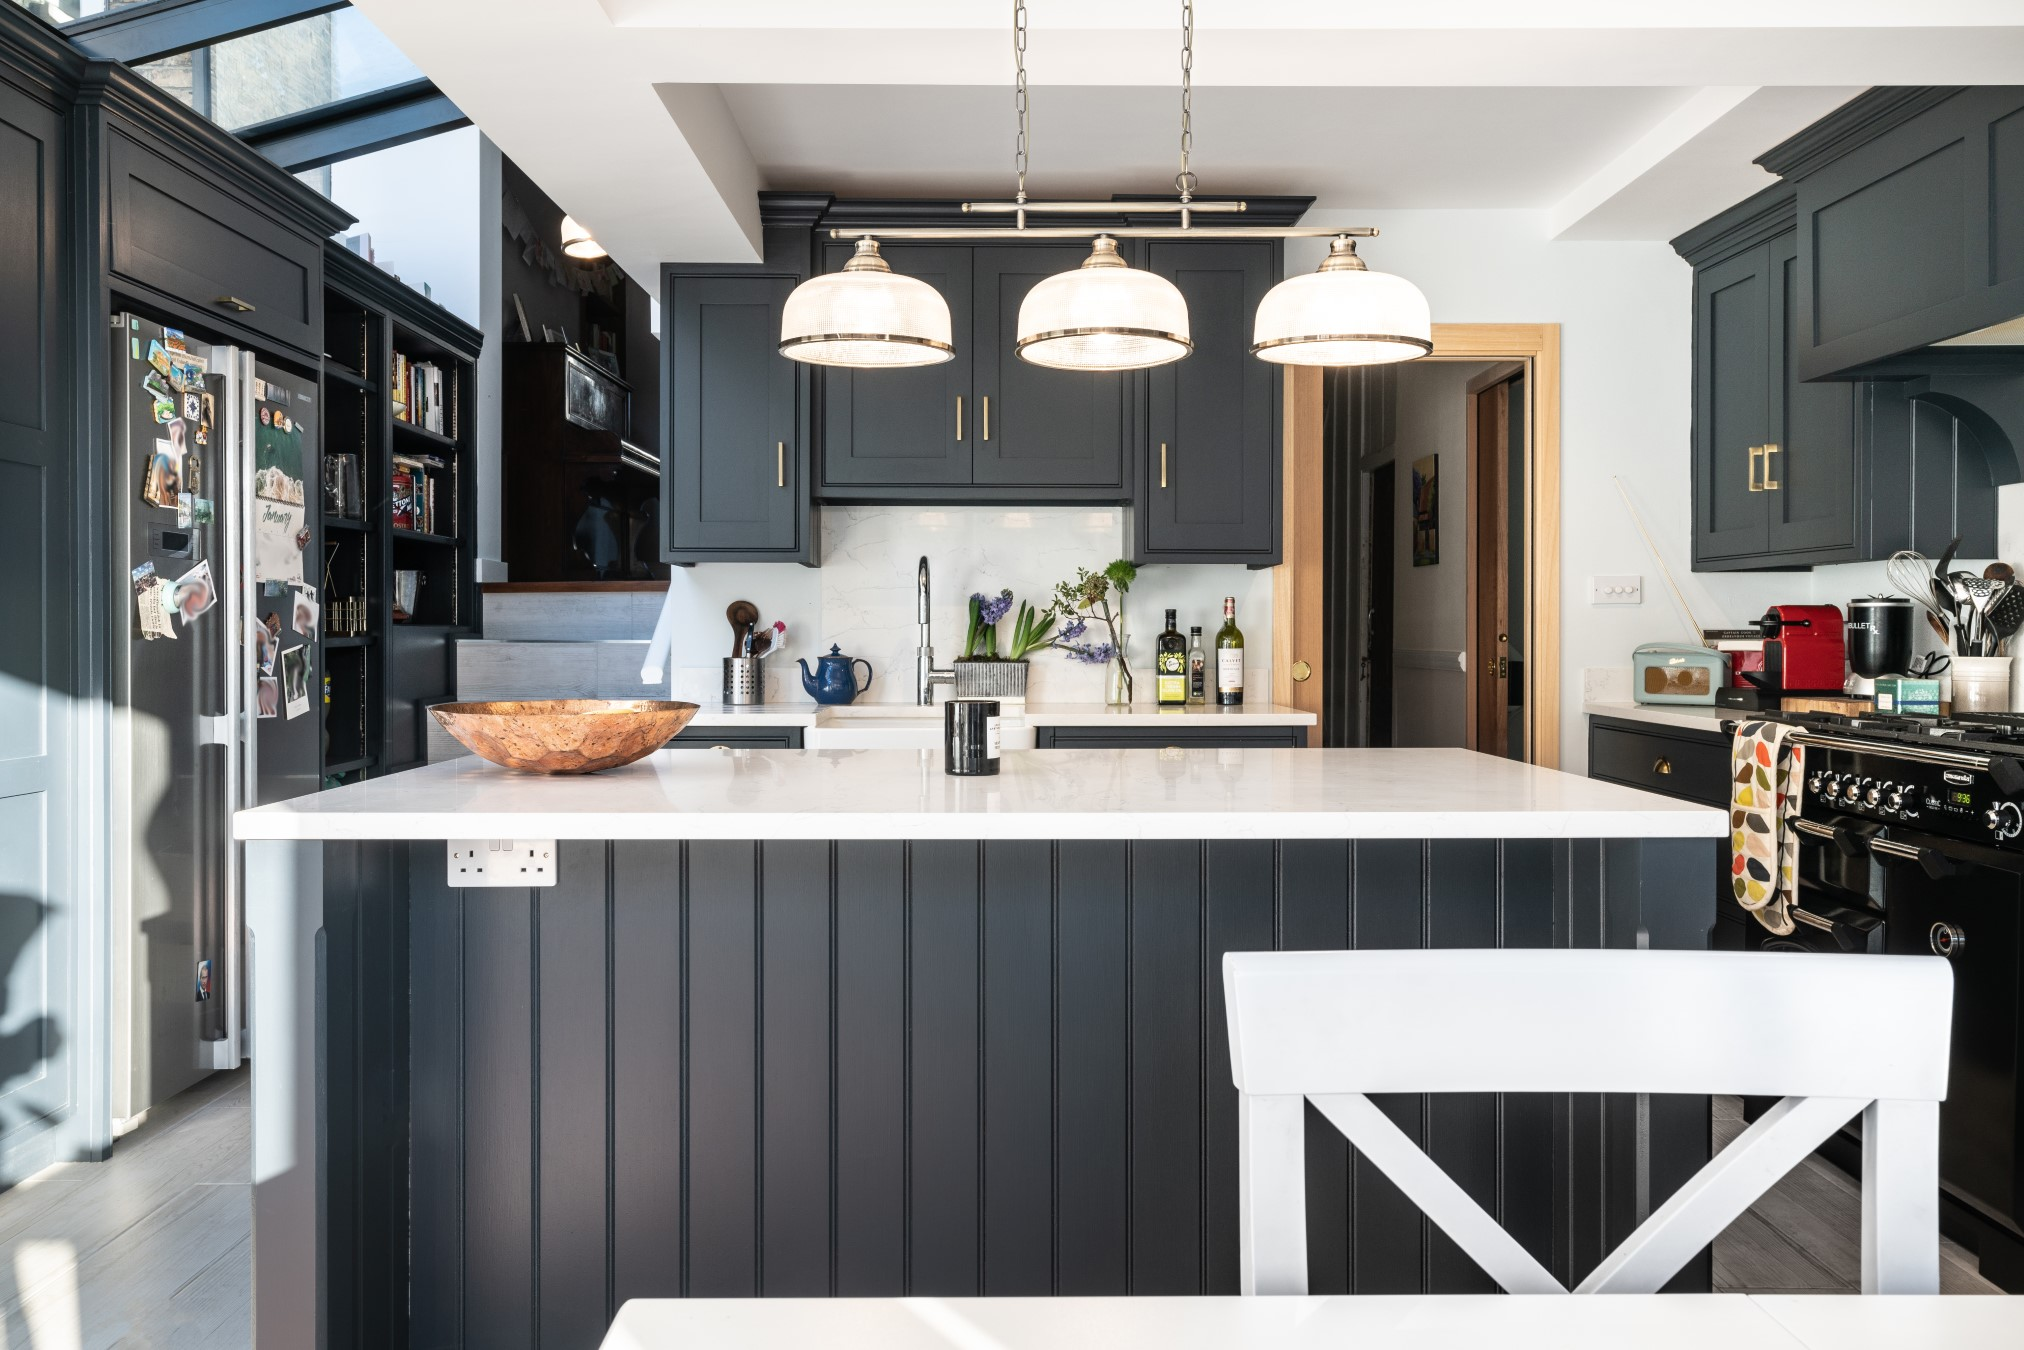 Introducing Black In The Kitchen From Farrow Ball Nicholas Bridger